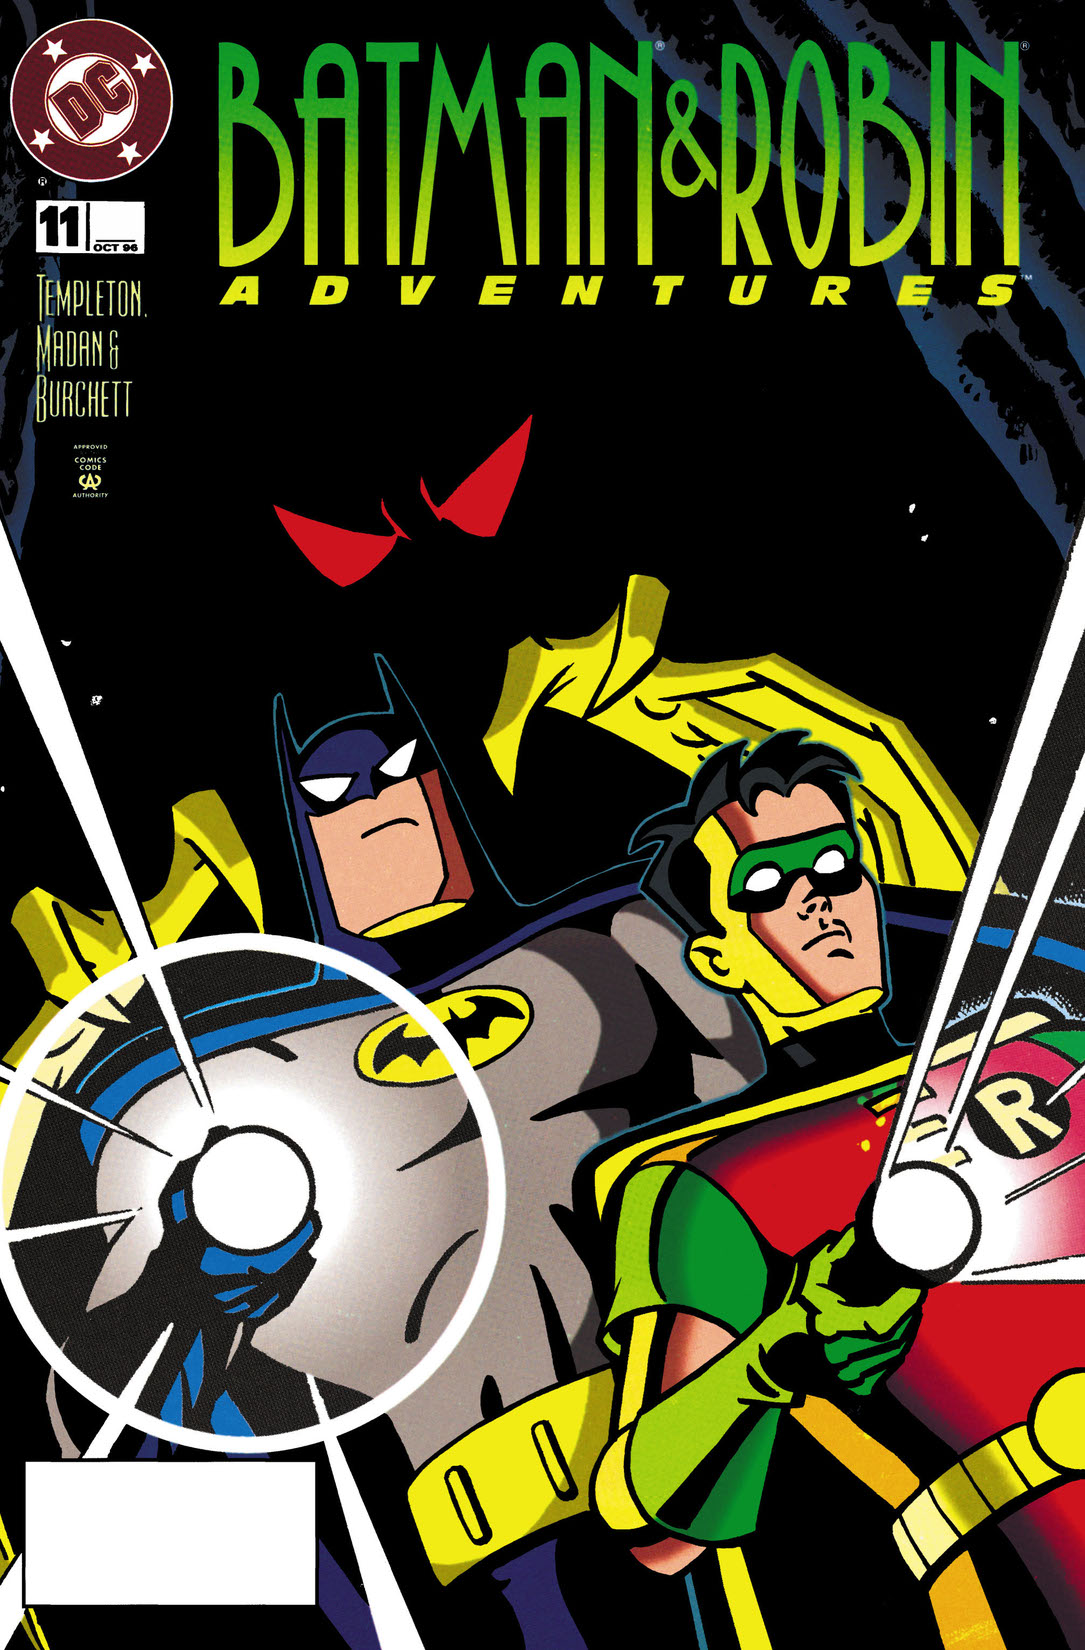 read the batman and robin adventures 1995 11 on dc. Black Bedroom Furniture Sets. Home Design Ideas